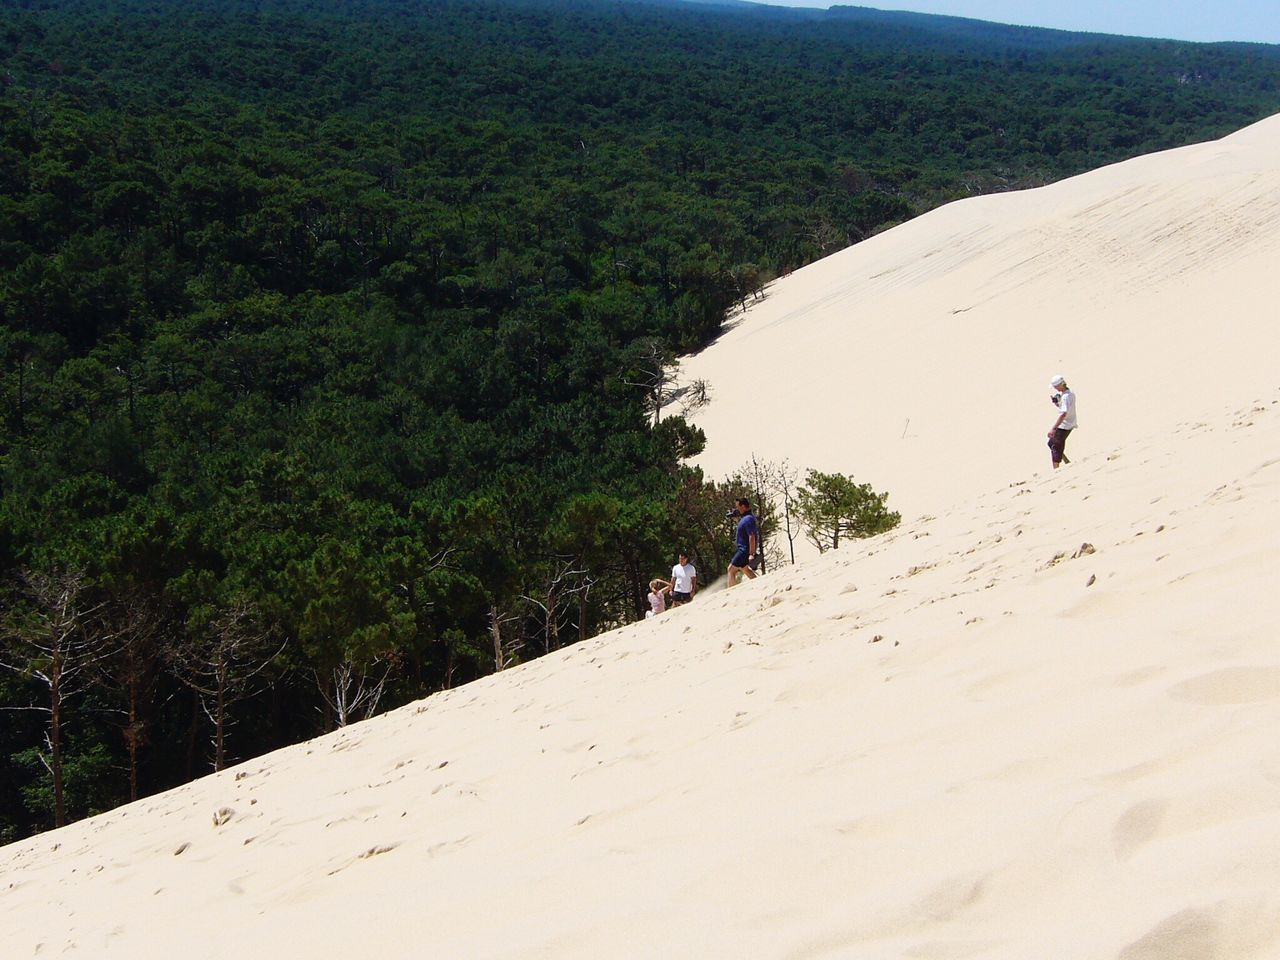 Real People Lifestyles Nature Leisure Activity Day Outdoors Walking Men Beauty In Nature Scenics Landscape Vacations One Person Adventure Tree Travel Destinations Tranquil Scene Dune Du Pyla Summer Sand Dune Beauty In Nature Finding New Frontiers